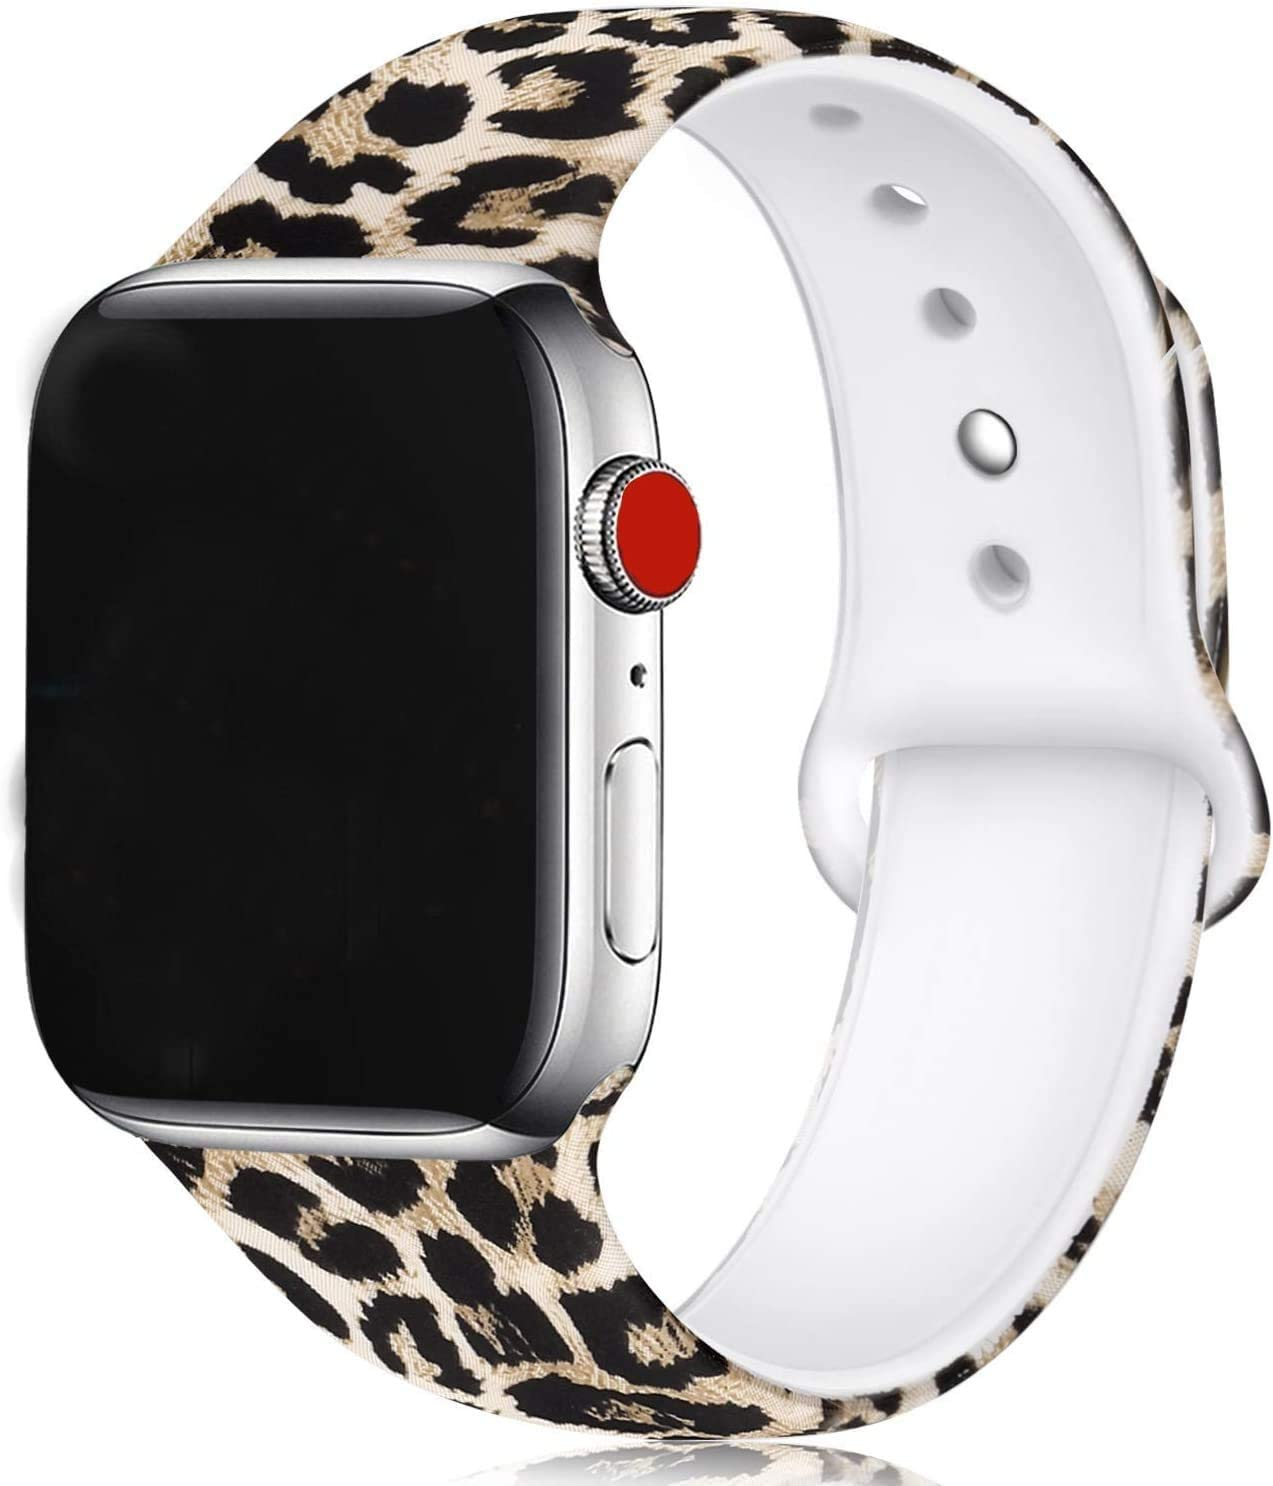 Floral Bands Compatible with Apple Watch Series 4/3/2/1,Silicone Sports Straps Printed Pattern Wristband for iWatch 38mm/42mm/40mm/44mm S/M M/L for Women/Men(Leopard Print)